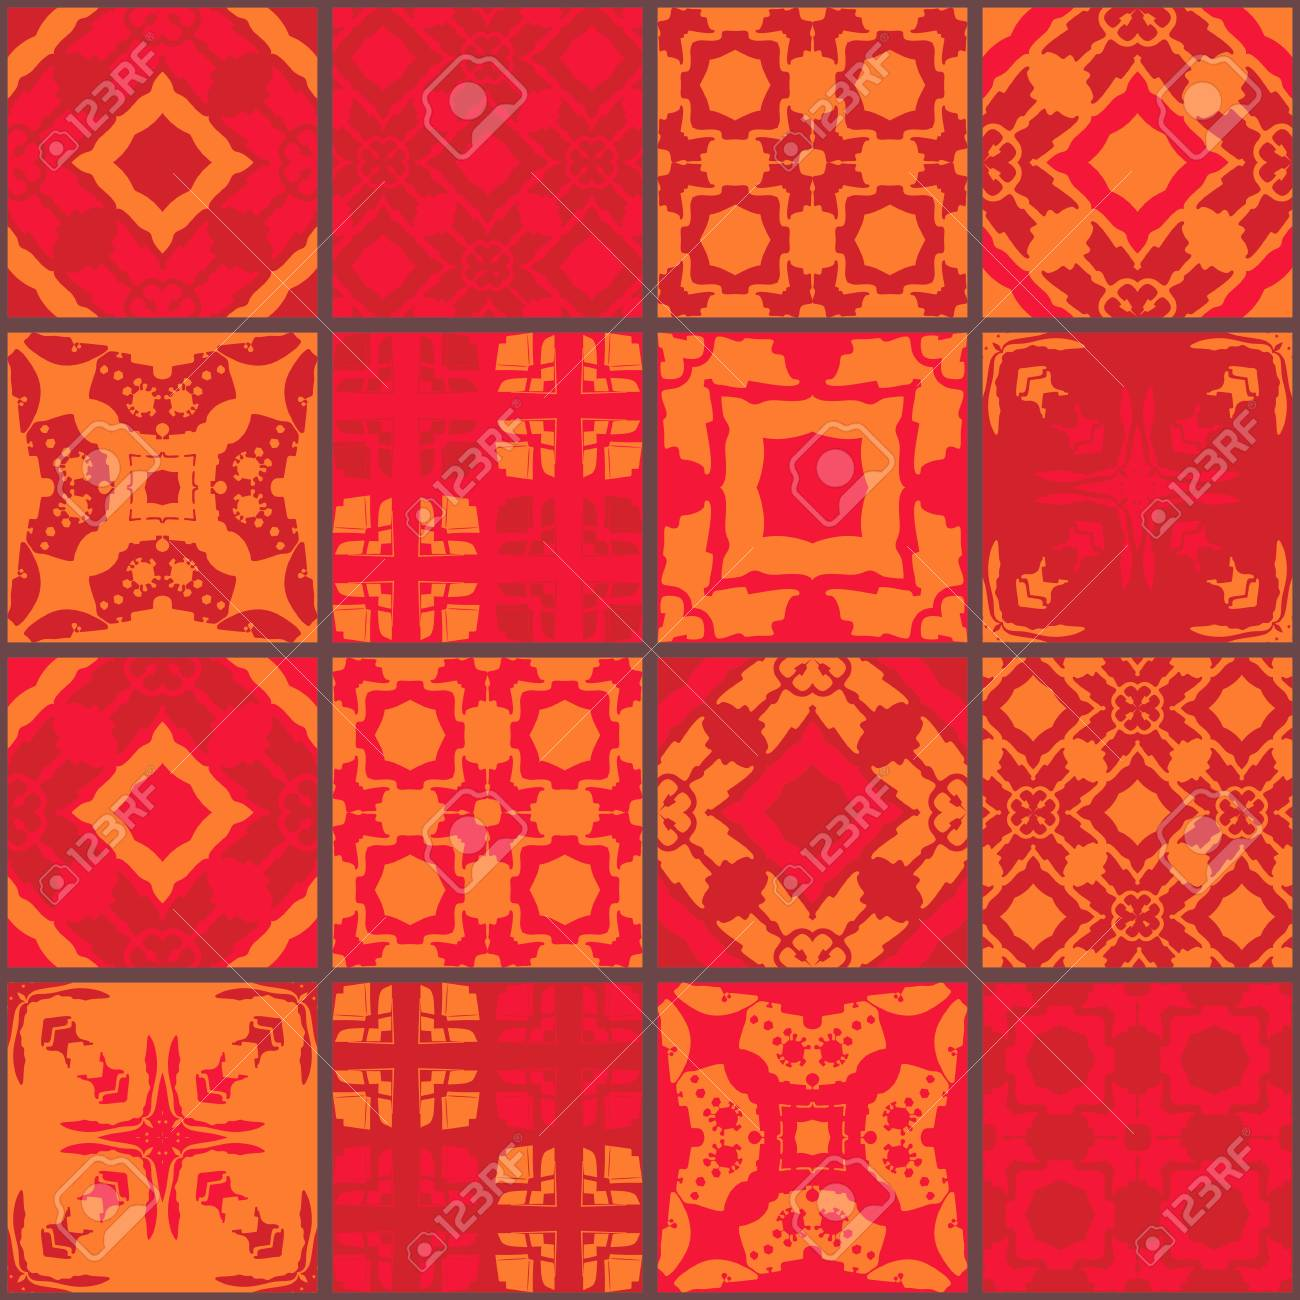 Red Moroccan Ceramic Tiles Cute Patchwork Pattern Vector Illustration Royalty Free Cliparts Vectors And Stock Illustration Image 64582754